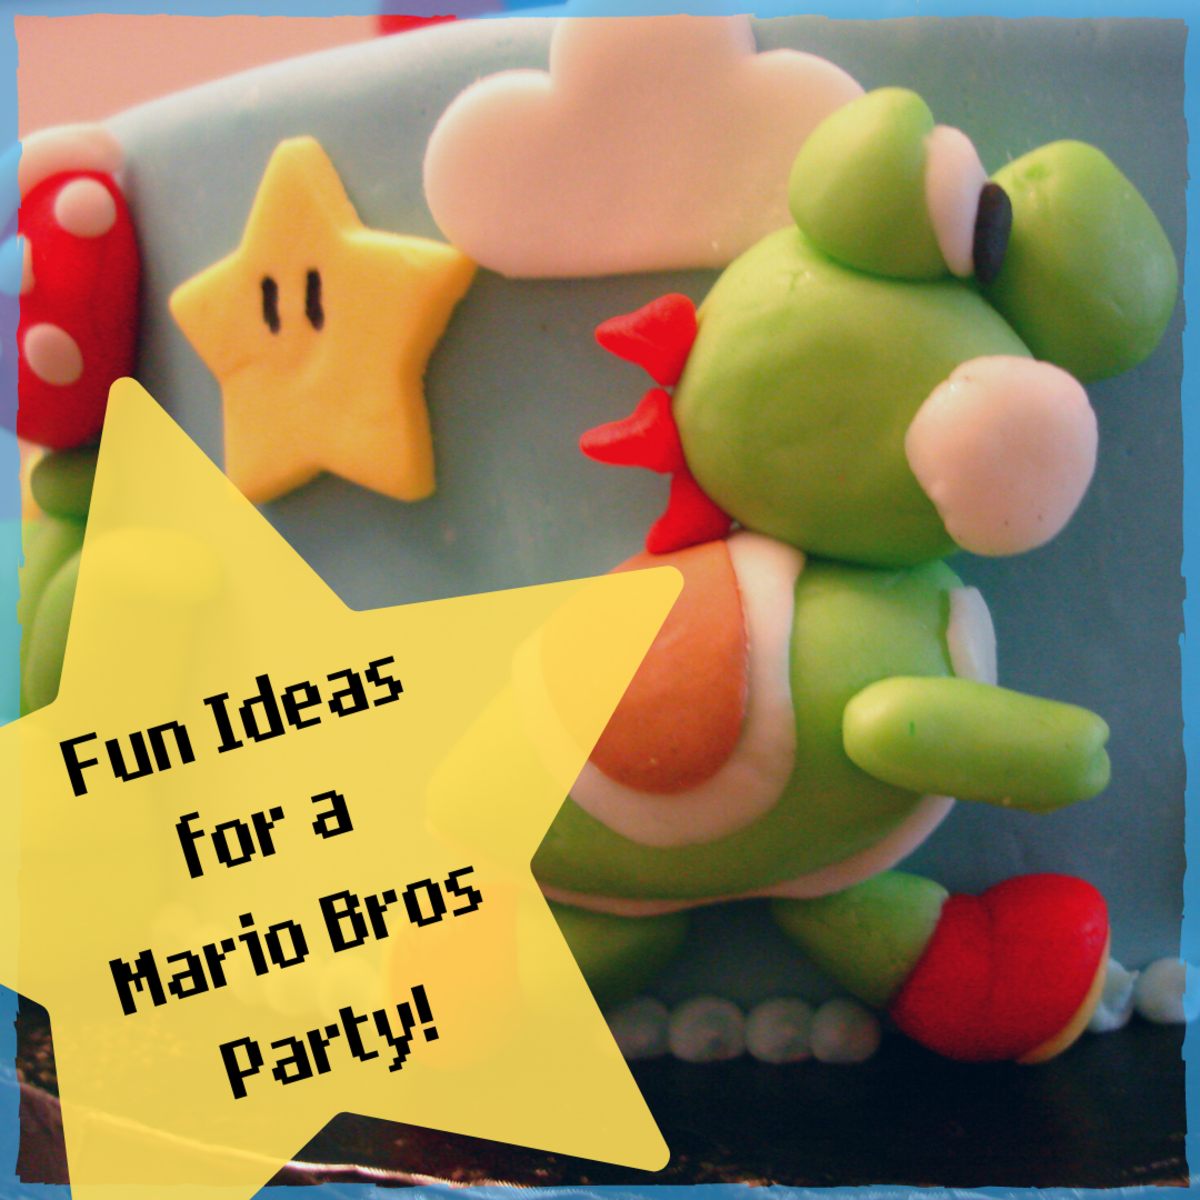 Get a pipeload of ideas for a Super Mario Bros-themed party, from cakes to decorations to free printables for DIY fun!